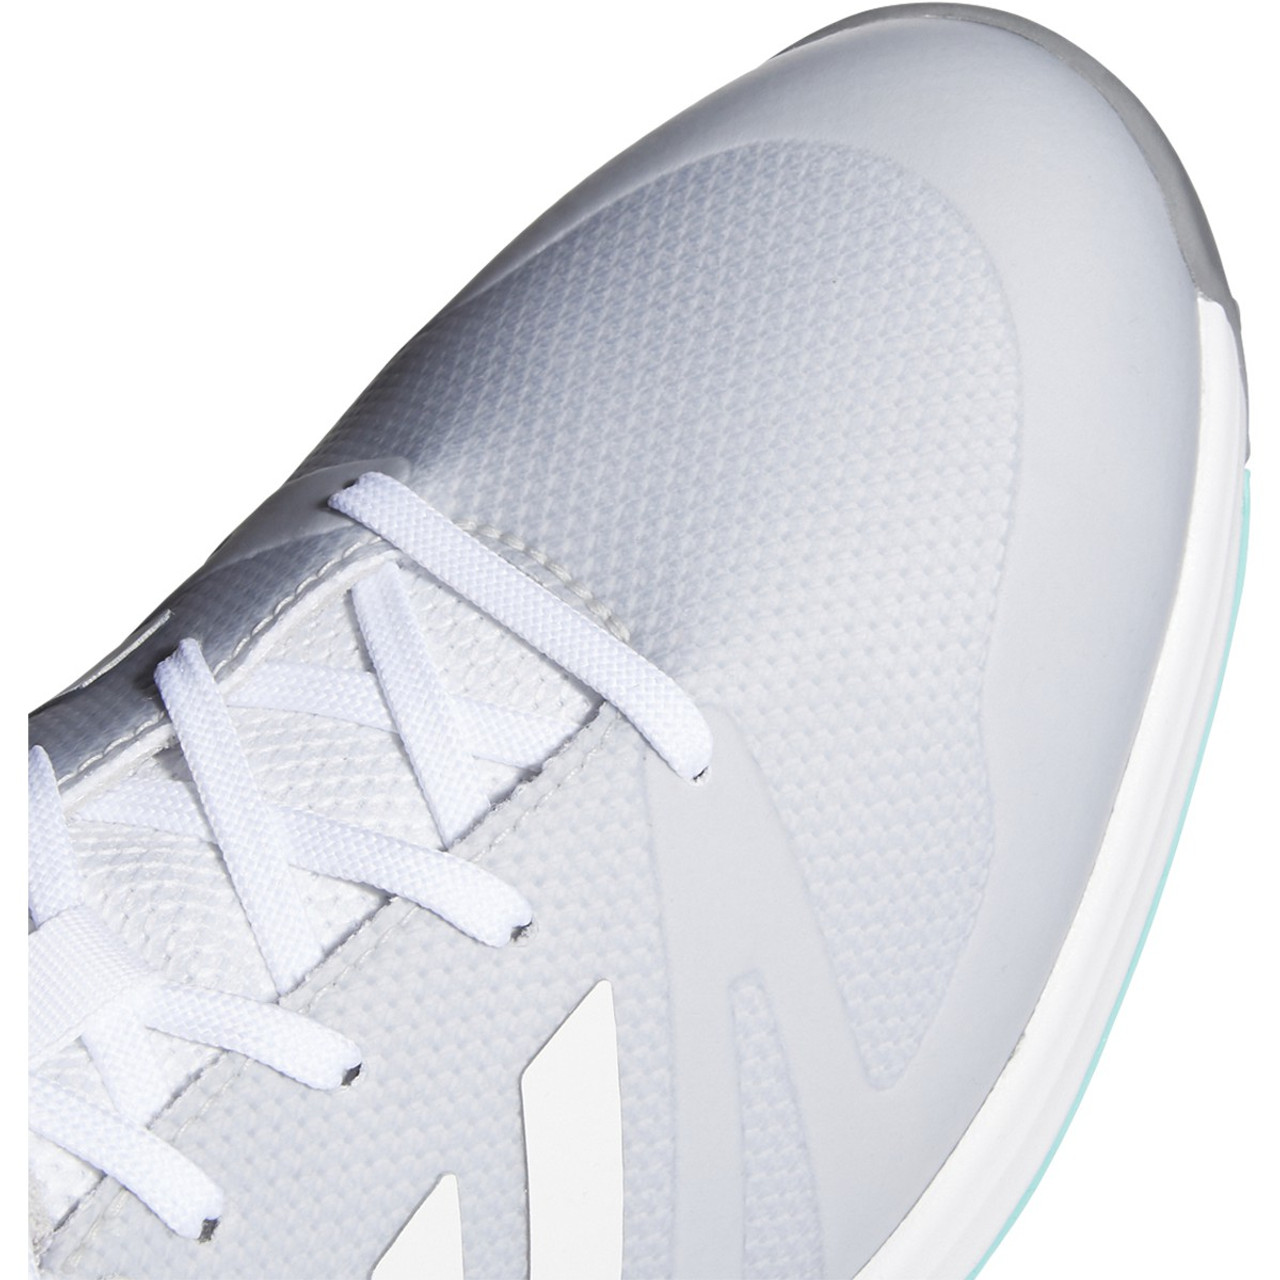 Adidas Womens EQT Spikeless Golf Shoes - White / White / Acid Mint